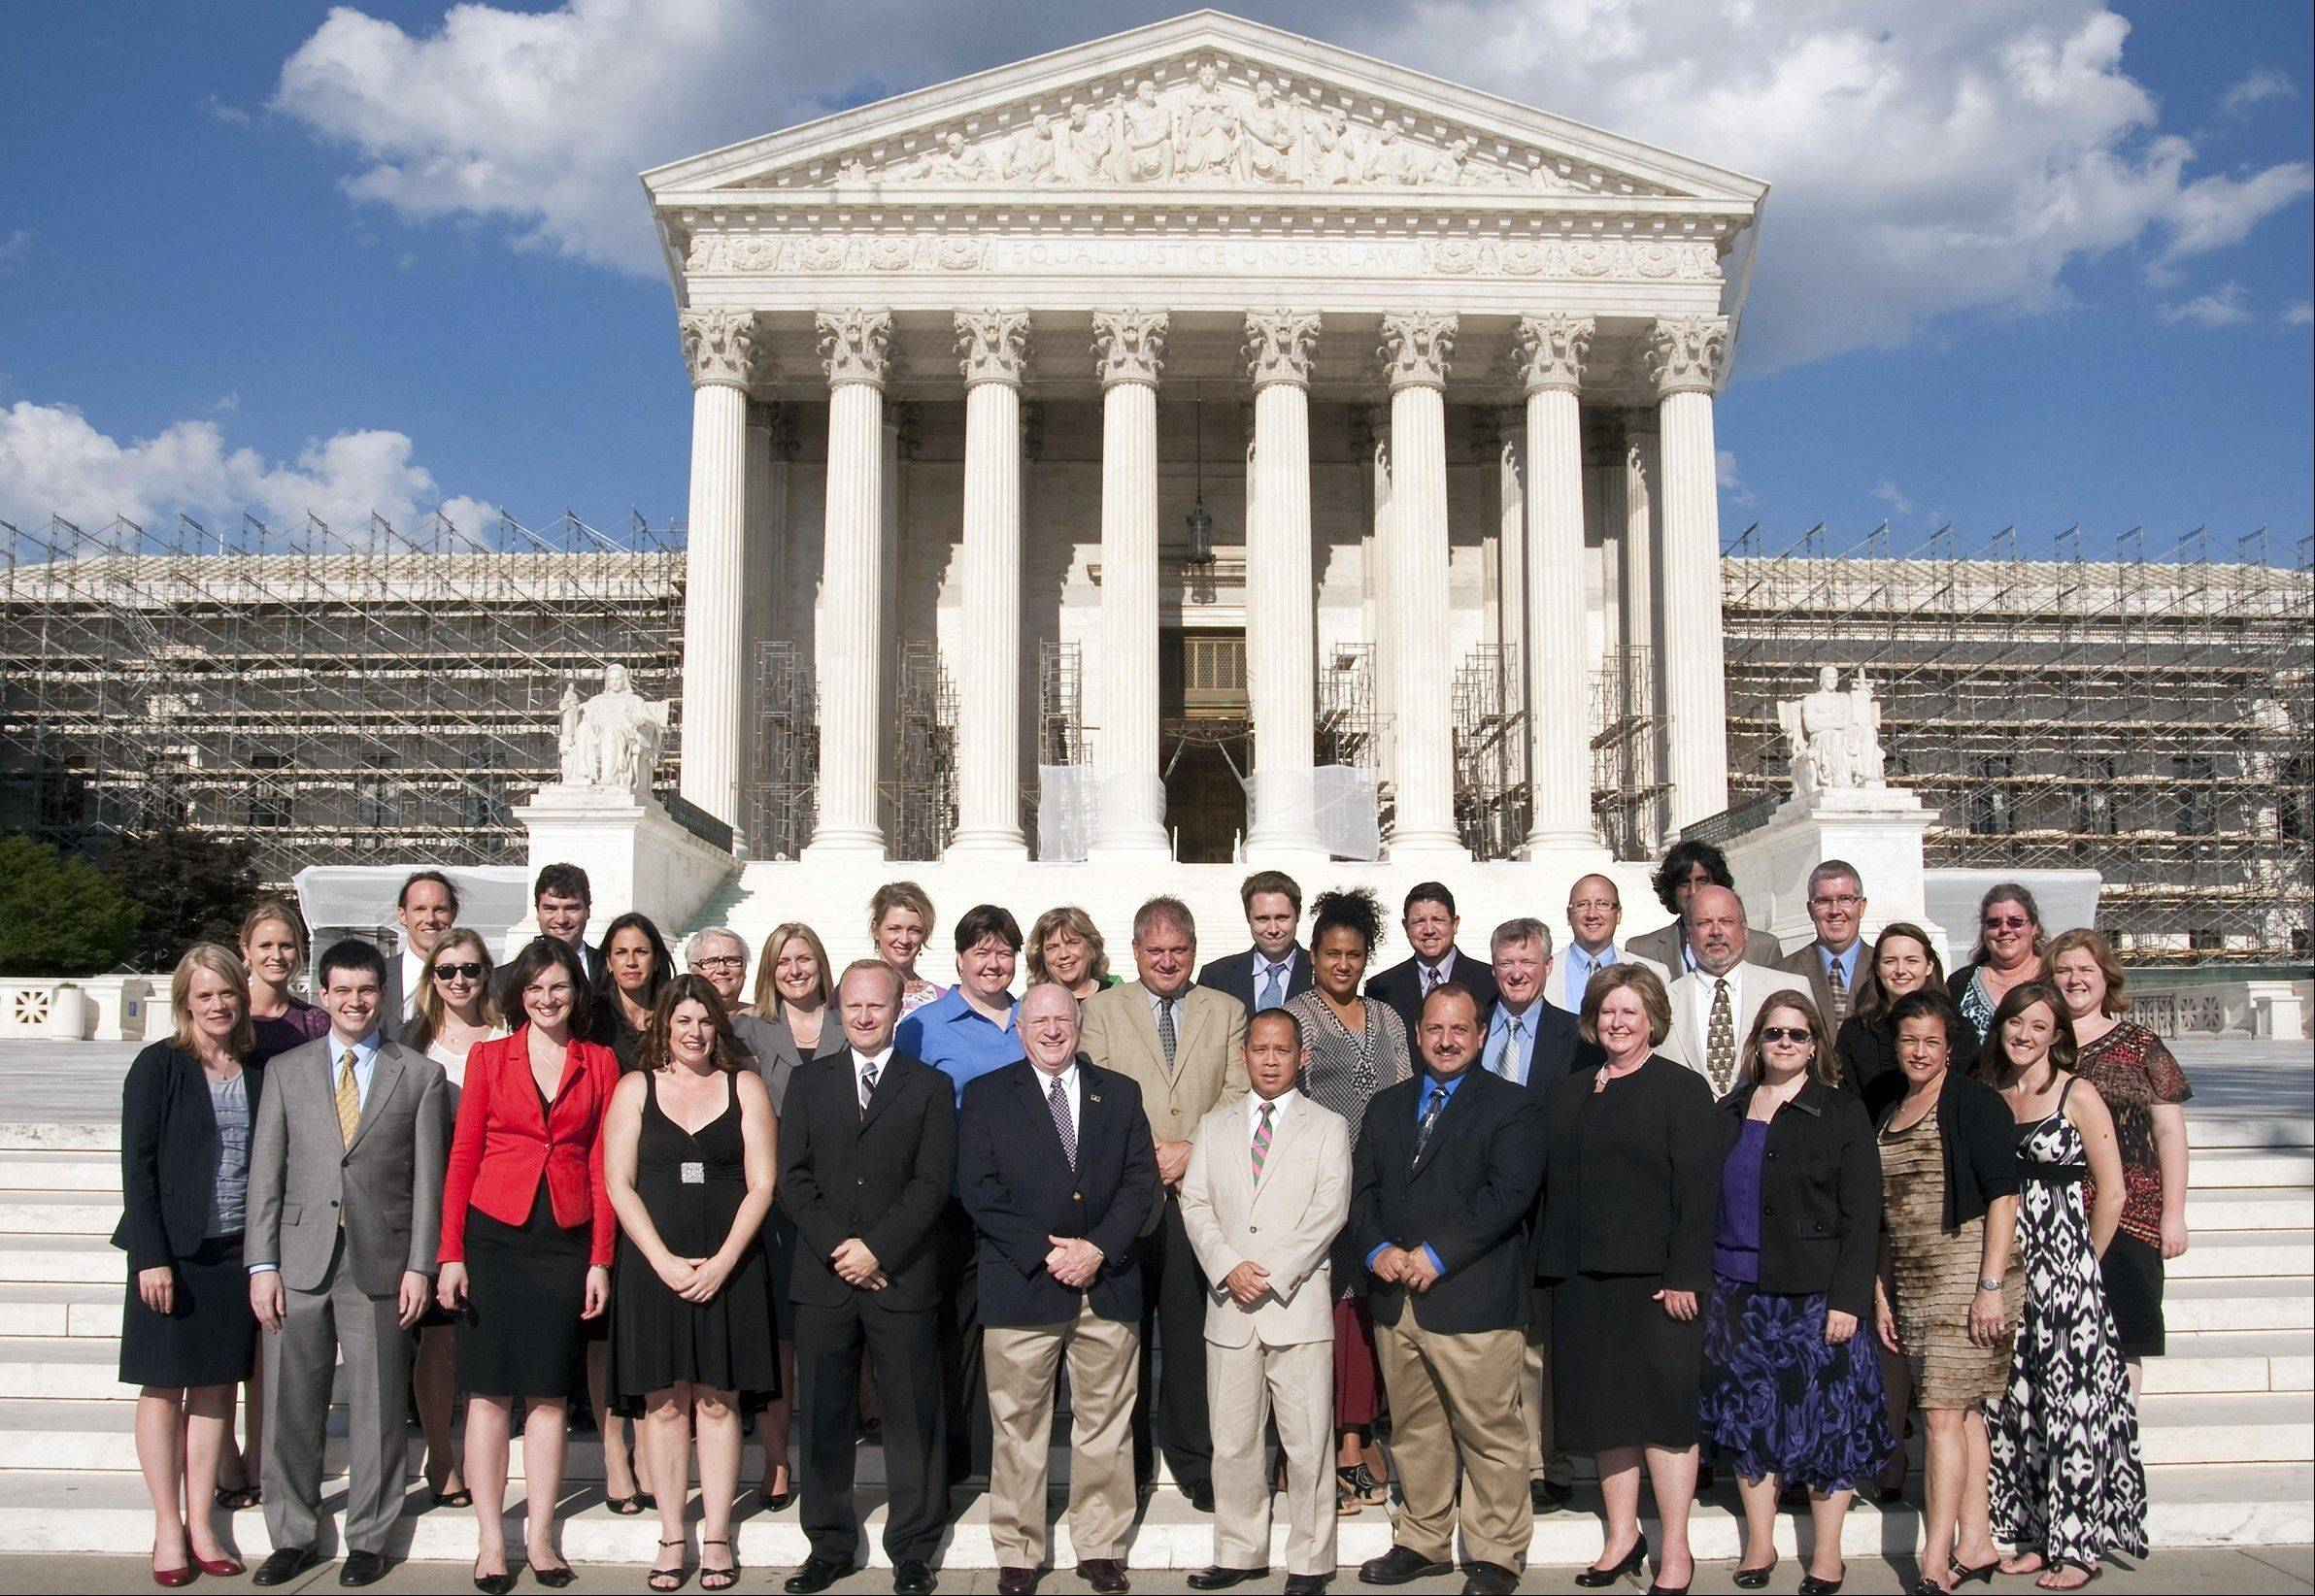 The Supreme Court Summer Institute for Teachers participants. Maine West Social Science teacher Kelly Pecak is second row, fourth from left.